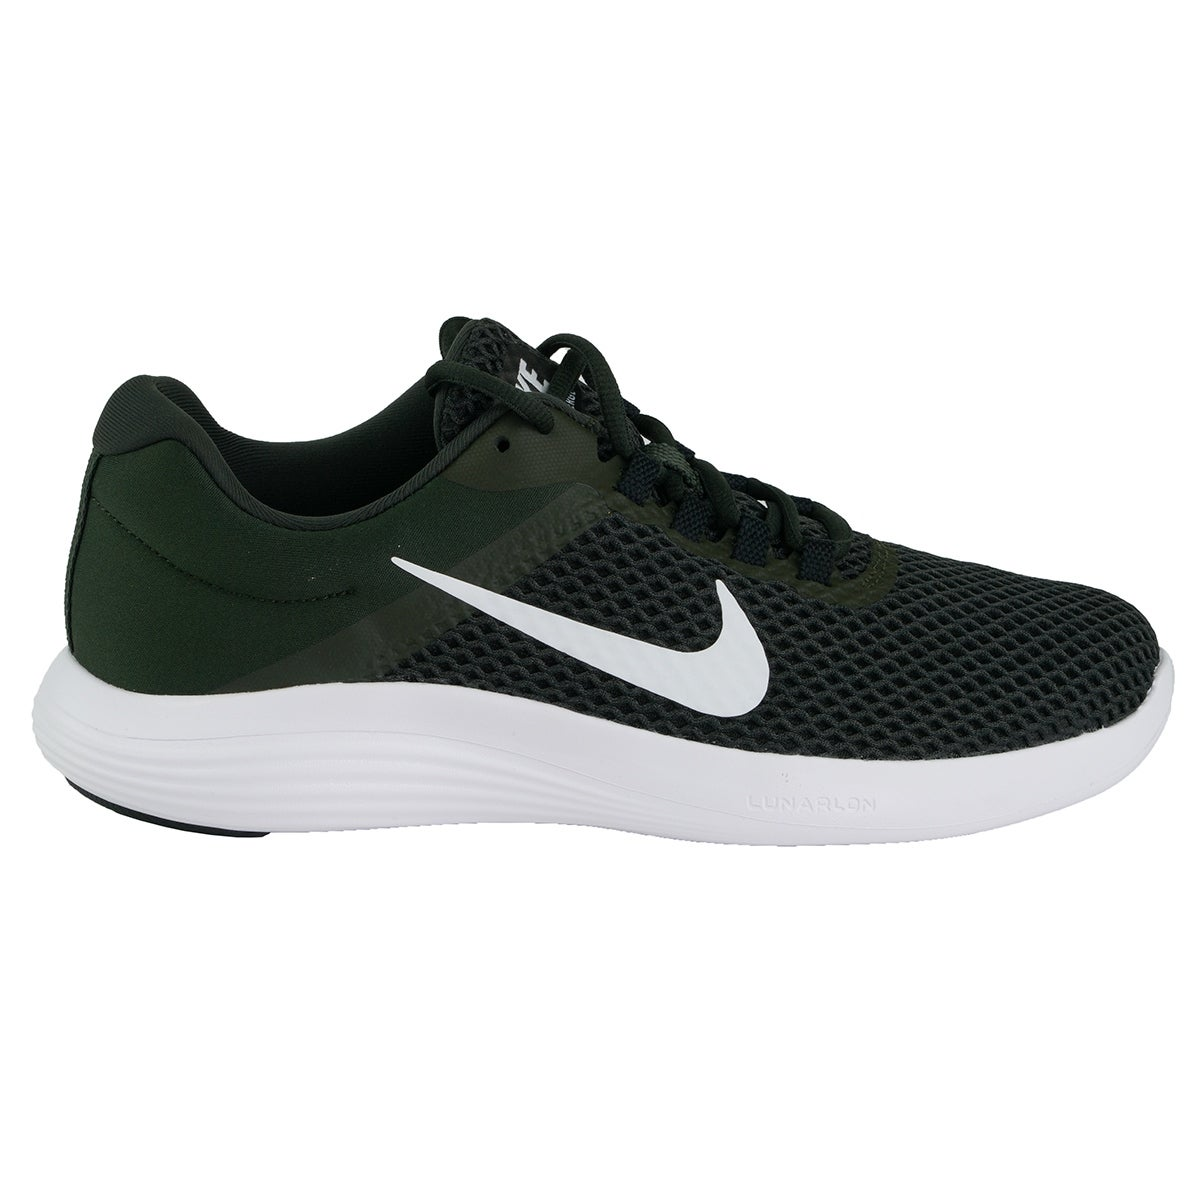 sports shoes 6f0a5 39f1c Nike Men u0027s Shoes   Find Great Shoes Deals Shopping at Overstock